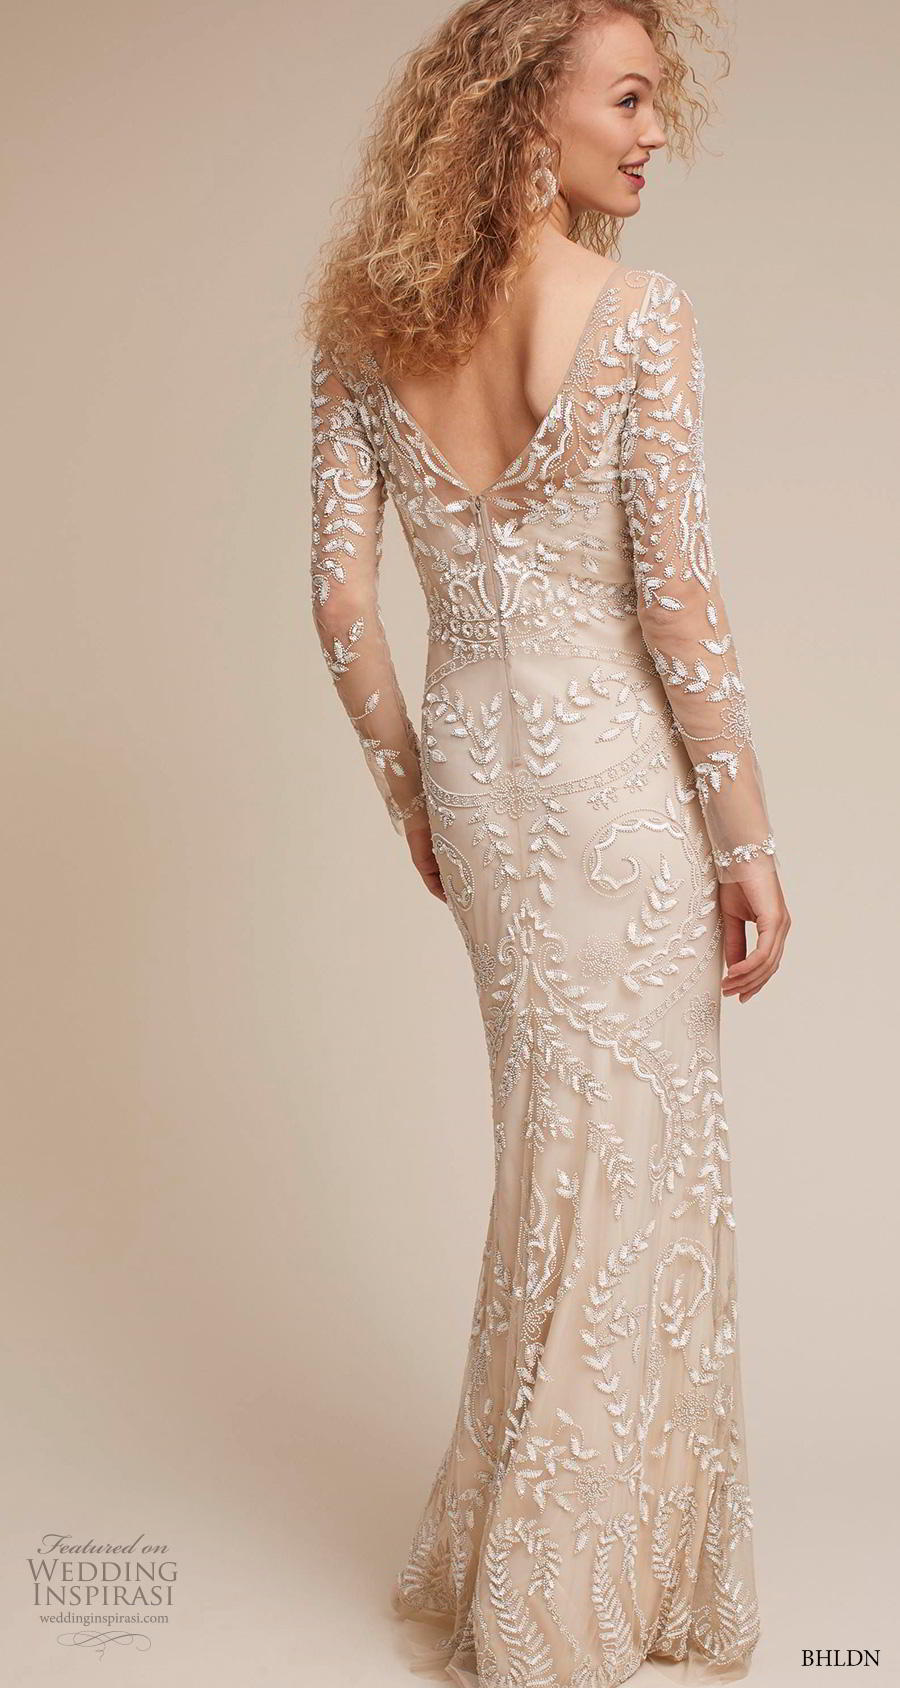 bhldn 2018 own bridal long sleeves bateau neck full embellishment elegant sheath weddomg dress v back sheath train (9) bv